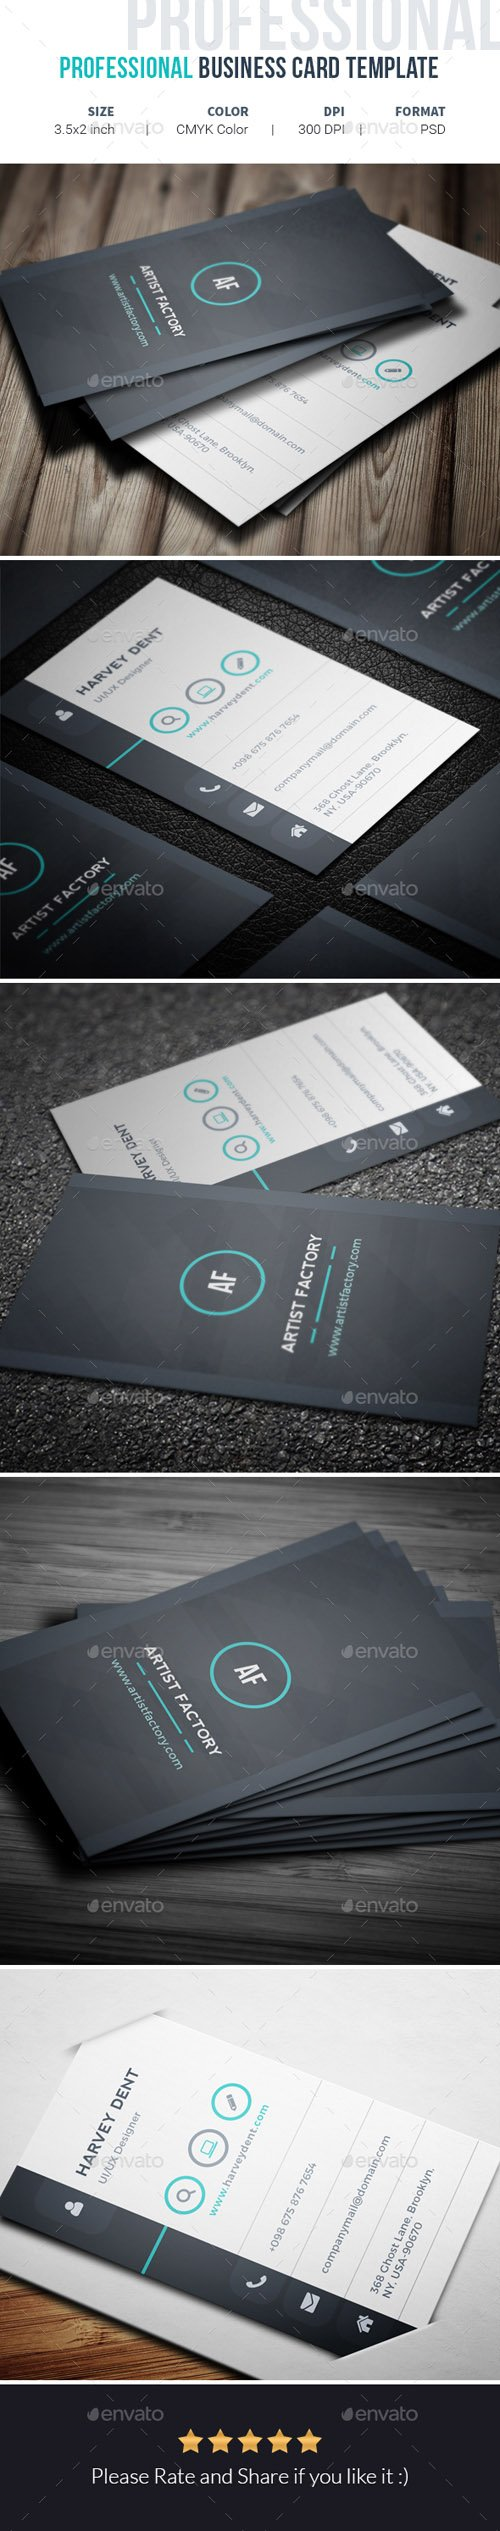 GR - Professional Business Card Template 19975465